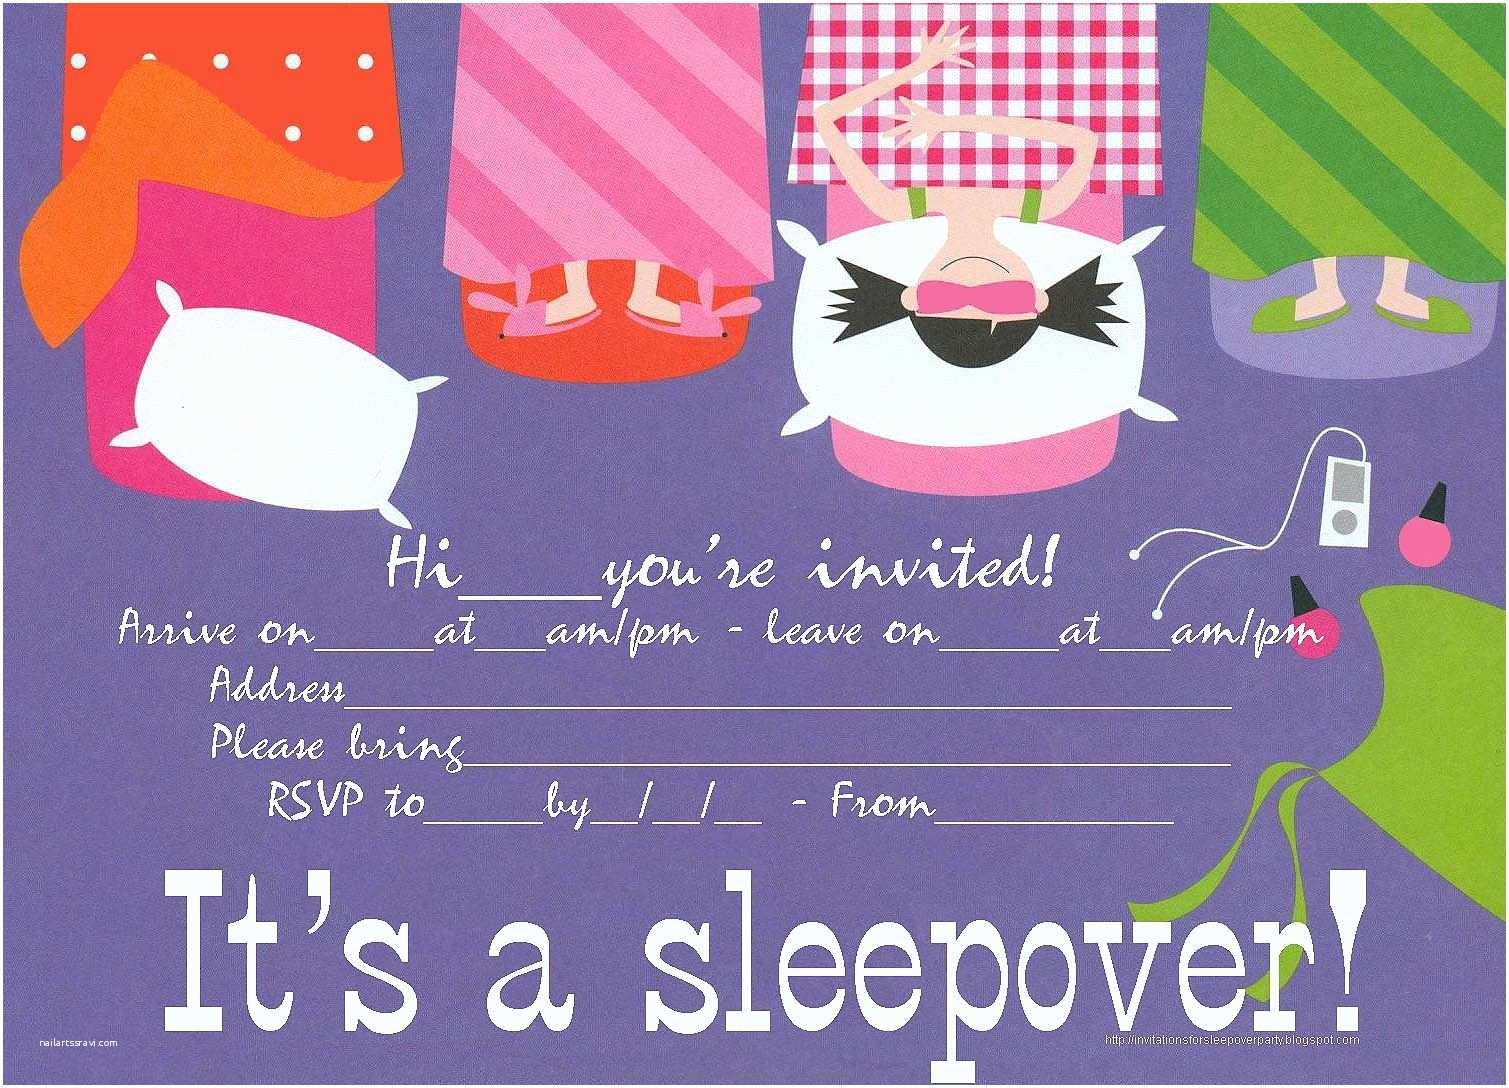 Slumber Party Invitations Sleepover Party Invitation that is Free to Print Just